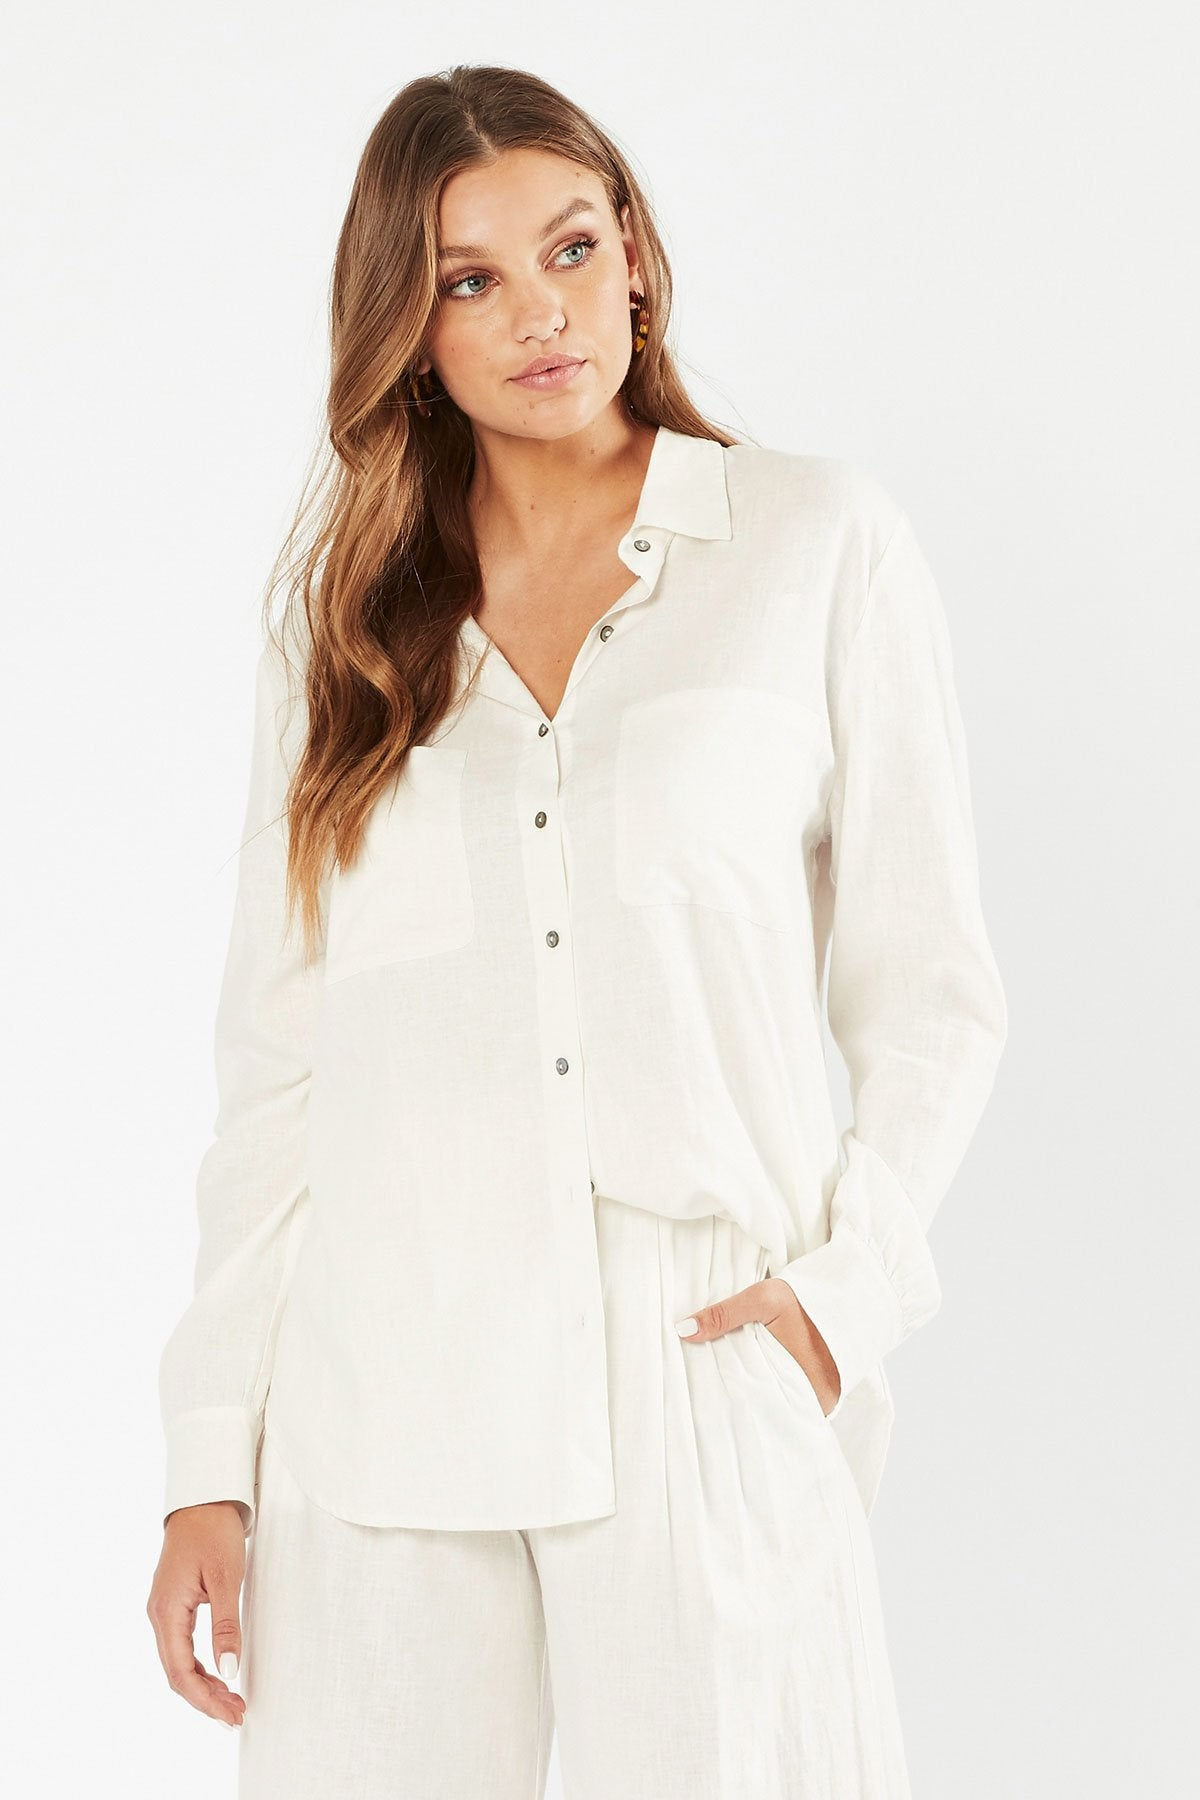 Tigerlily Womens Hana Shirt - White